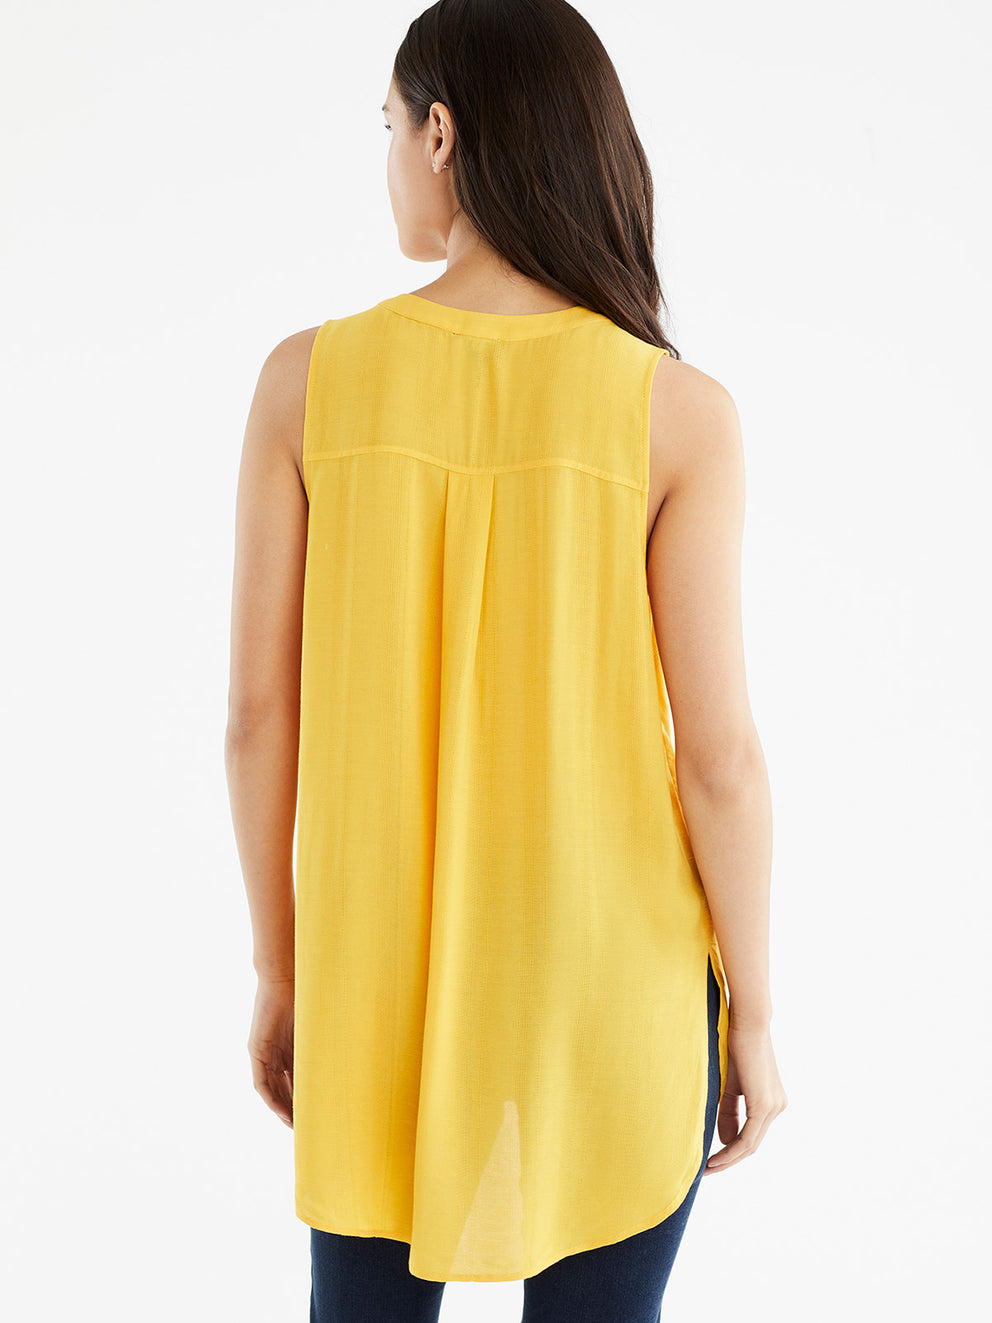 The Jones New York Relaxed Tank Top in color Golden - Image Position 3